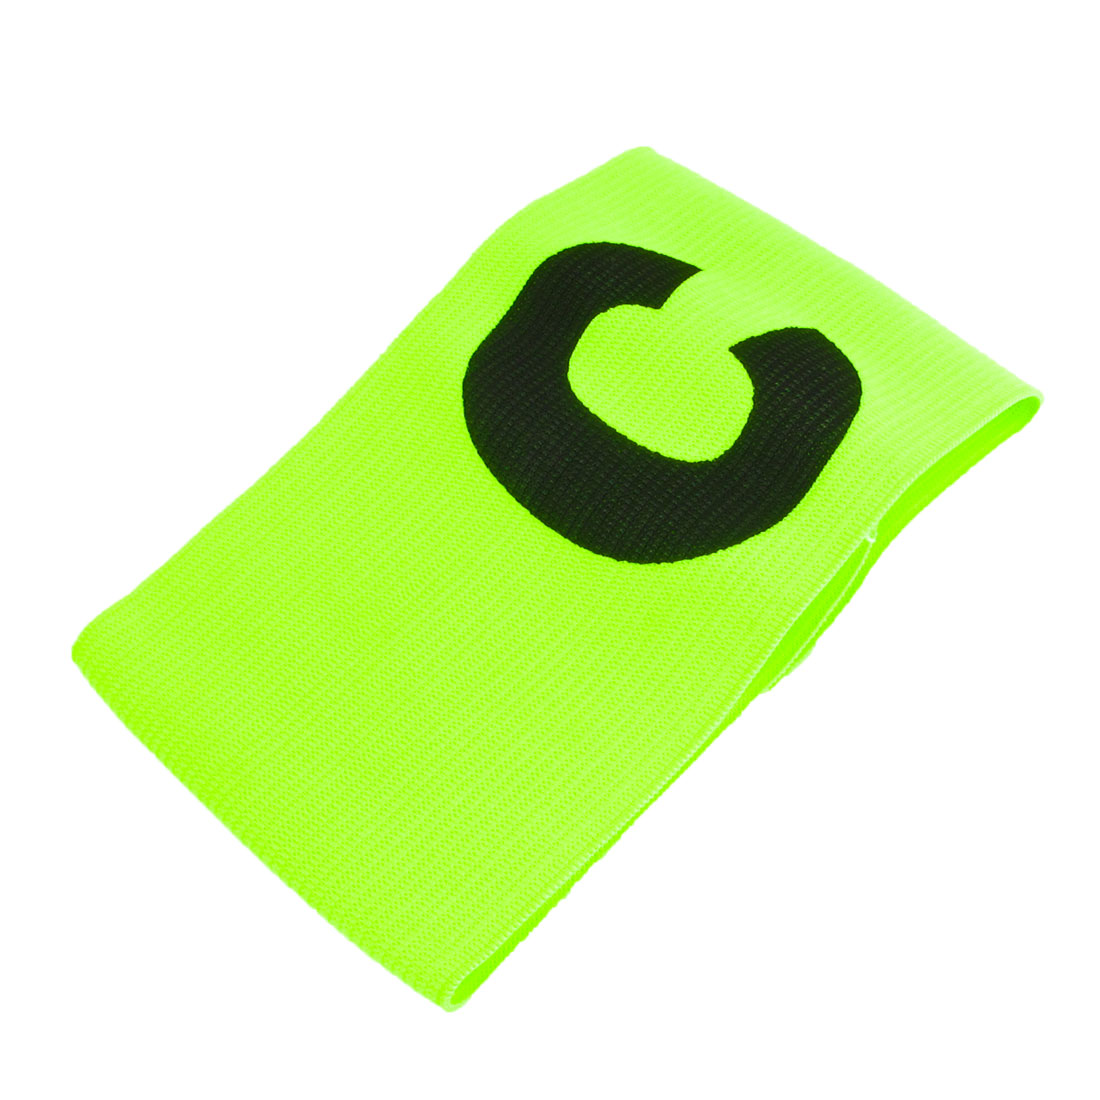 Yellowgreen Elastic Tension Football Soccer Captain Armband